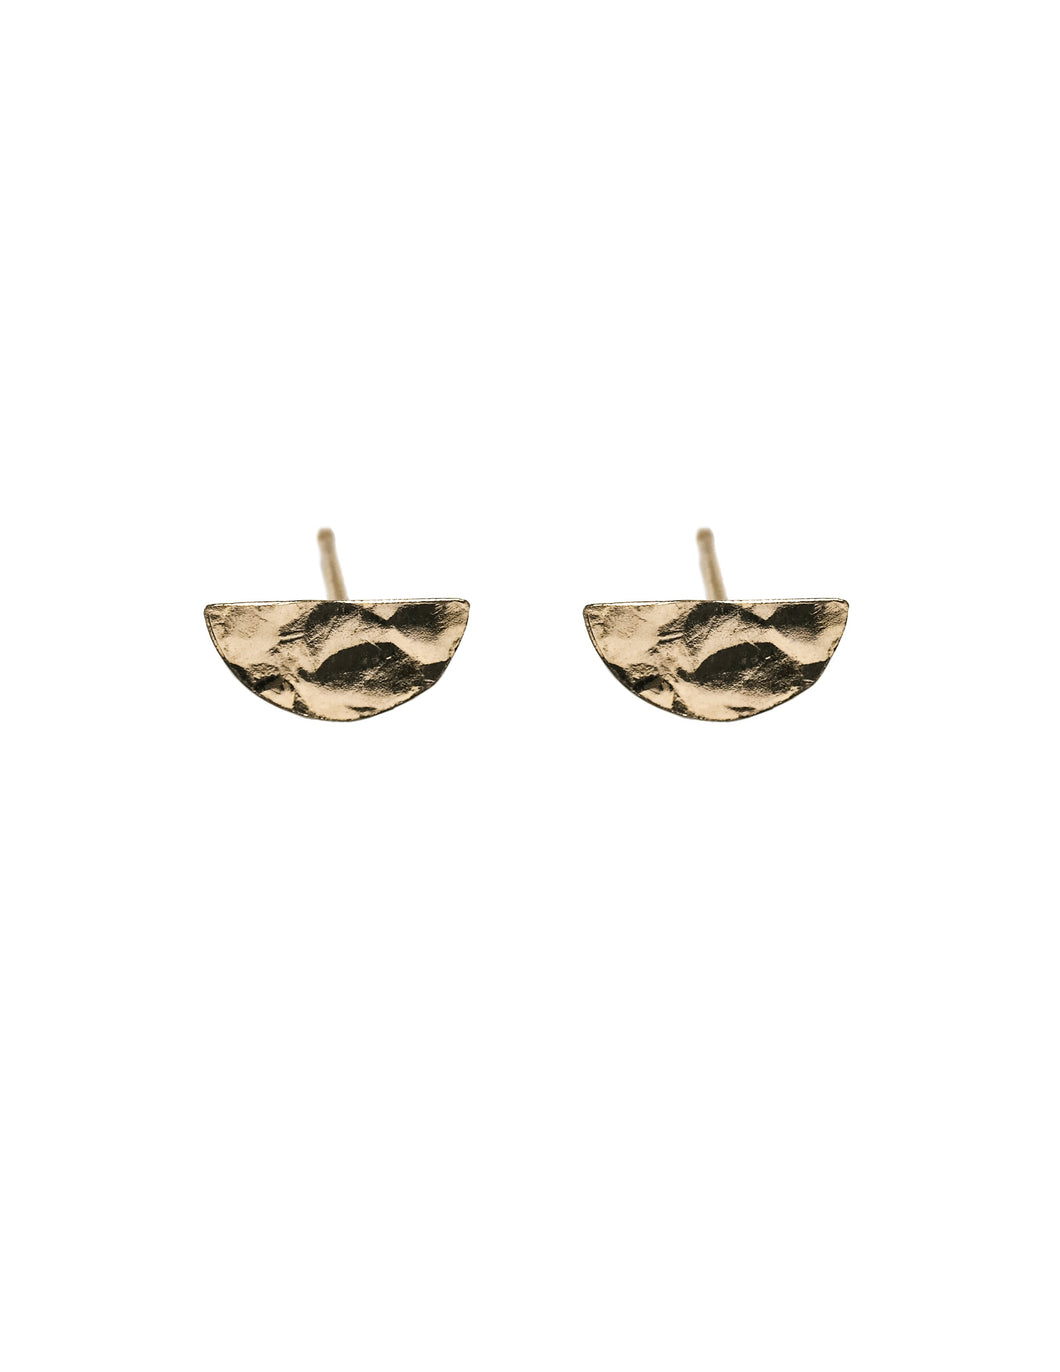 Wain Stud Earrings - Front and Company: Gifts